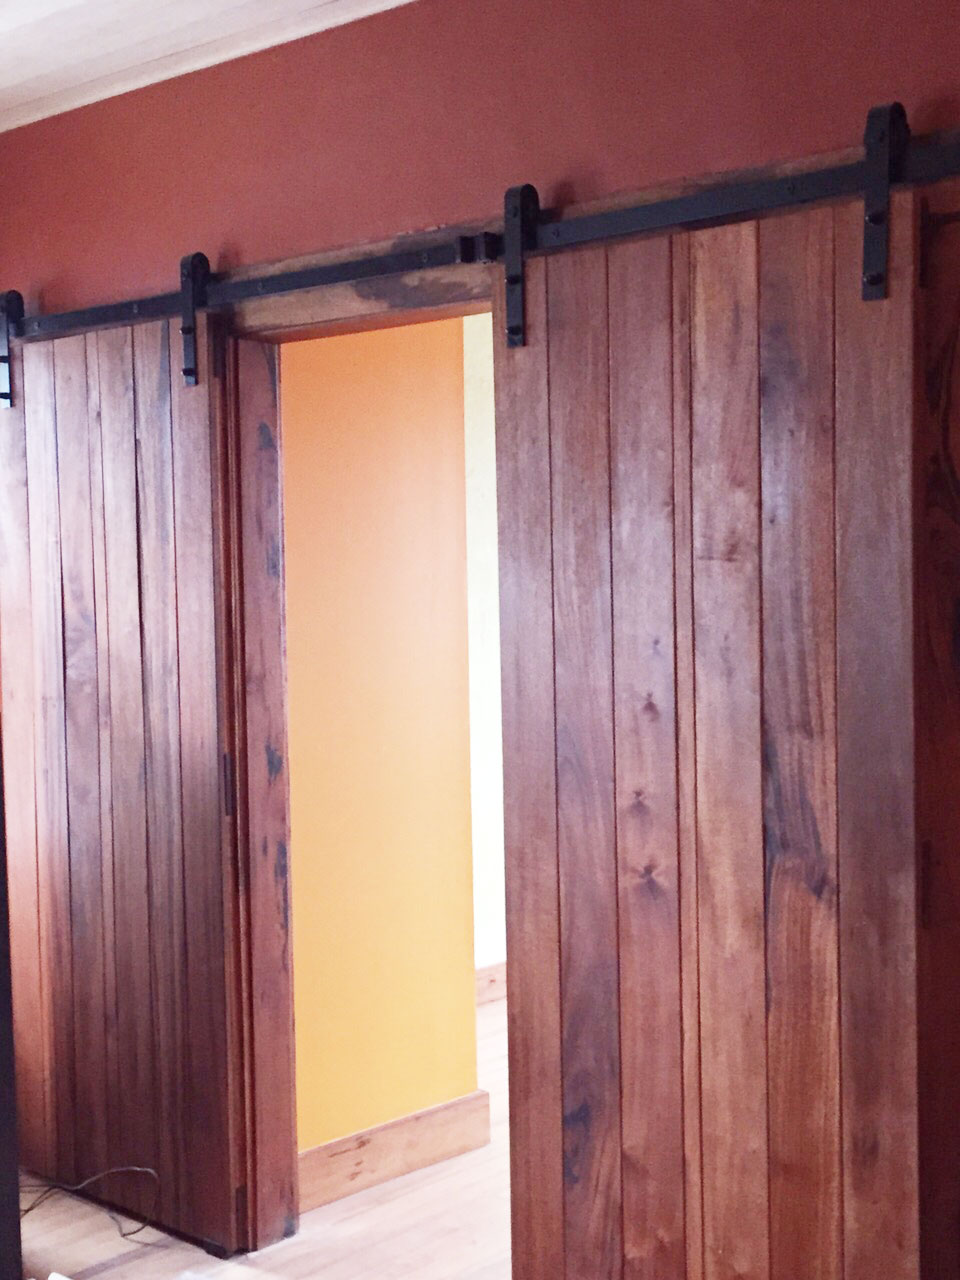 Wood Barn Style Sliding Doors Rustic Bathroom Remodel By Bay State Refinishing Remodeling